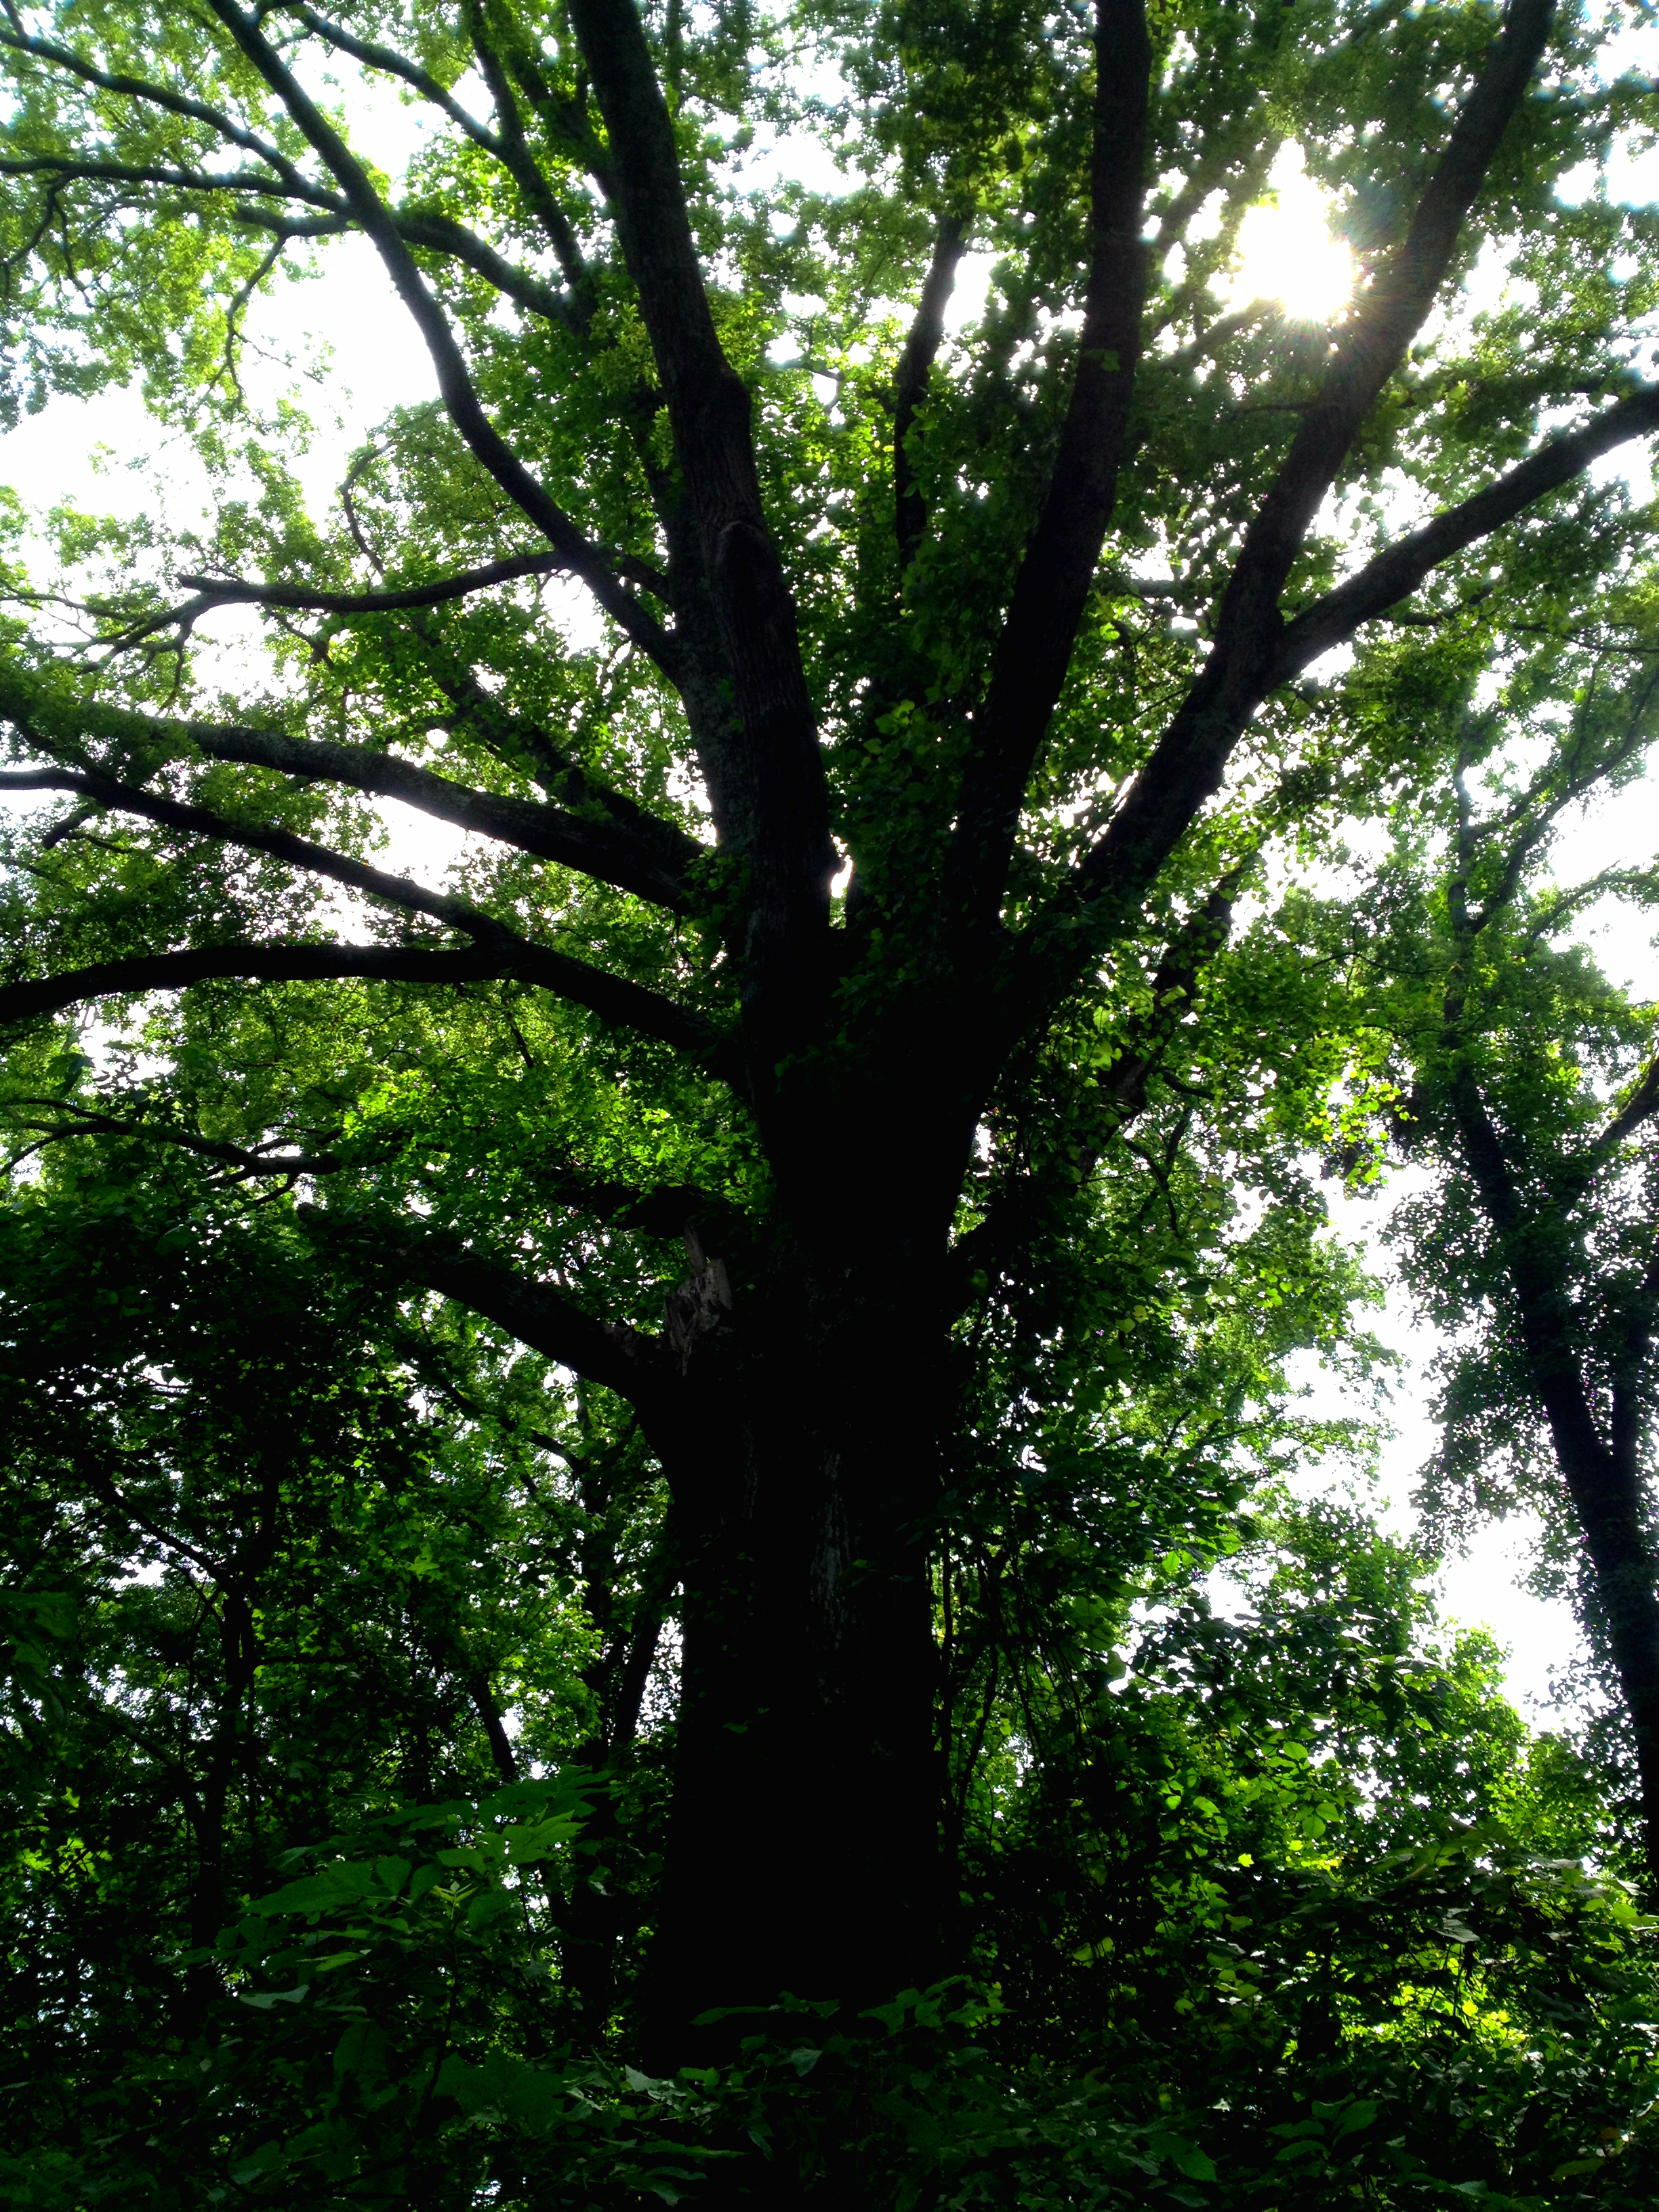 Dolls head trail at constitution lakes history atlanta the tallest recorded willow oak inside the perimeter at constitution lakes park history atlanta 2014 ccuart Image collections